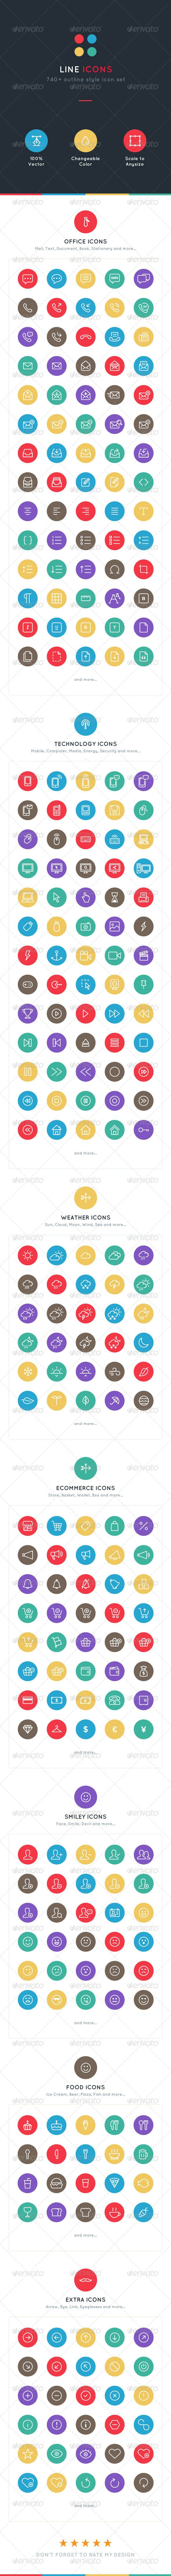 740+ Line Icons | Buy and Download: http://graphicriver.net/item/740-line-icons/7886875?WT.ac=category_thumb&WT.z_author=vuuuds&ref=ksioks